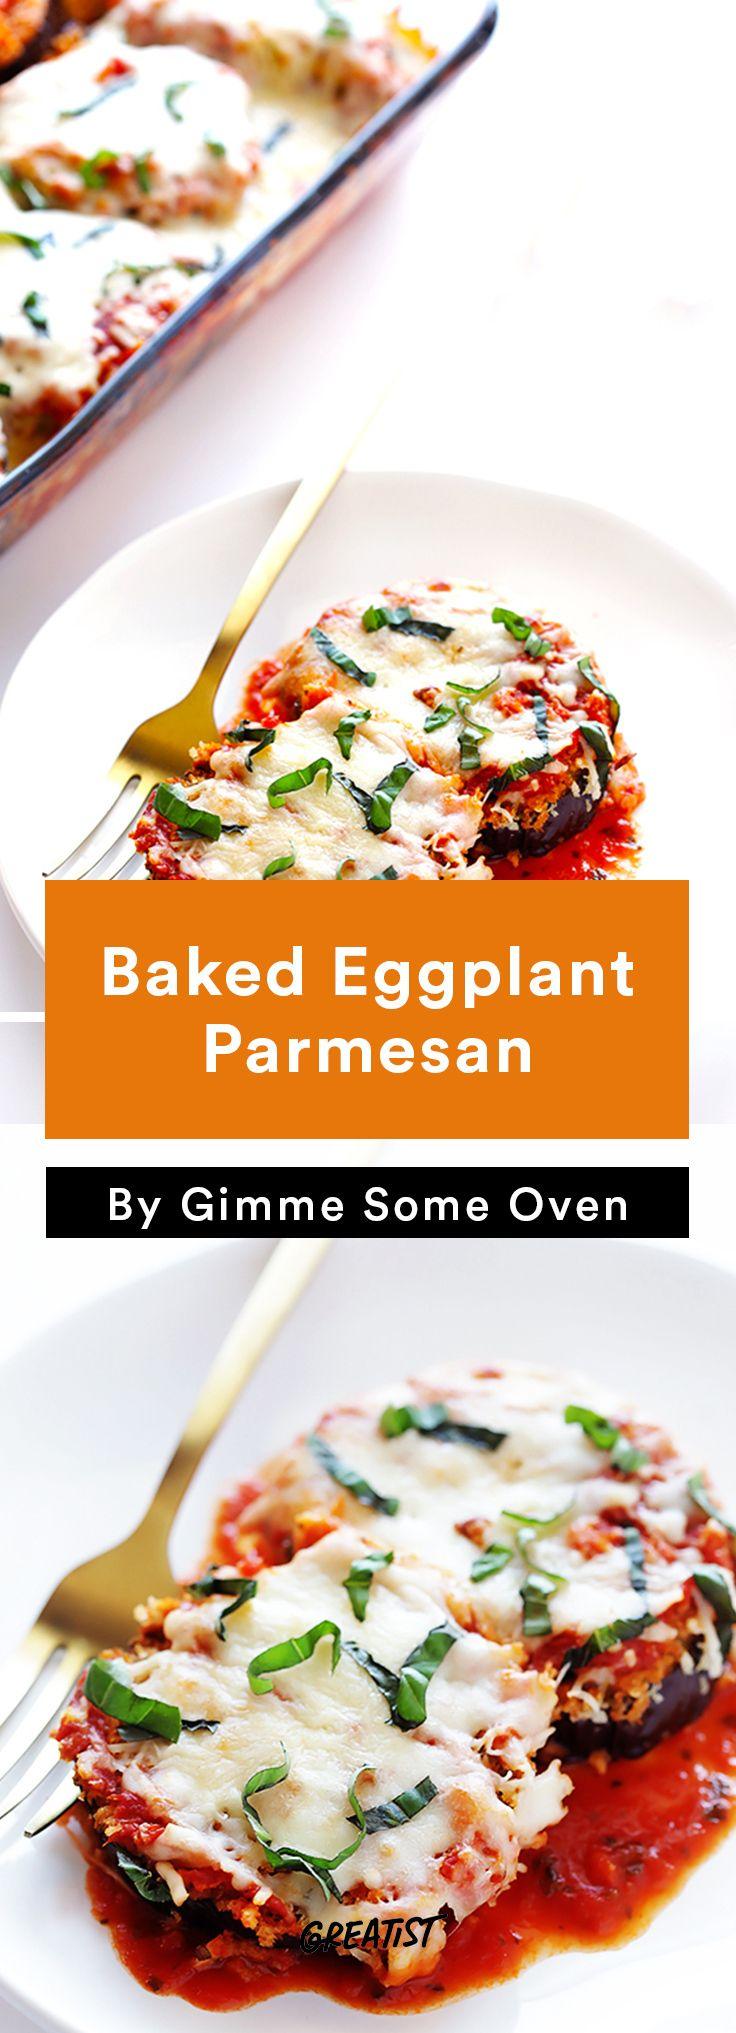 1. Baked Eggplant Parmesan #easy #vegetarian #dinners http://greatist.com/eat/vegetarian-dinner-recipes-that-bake-in-one-pan